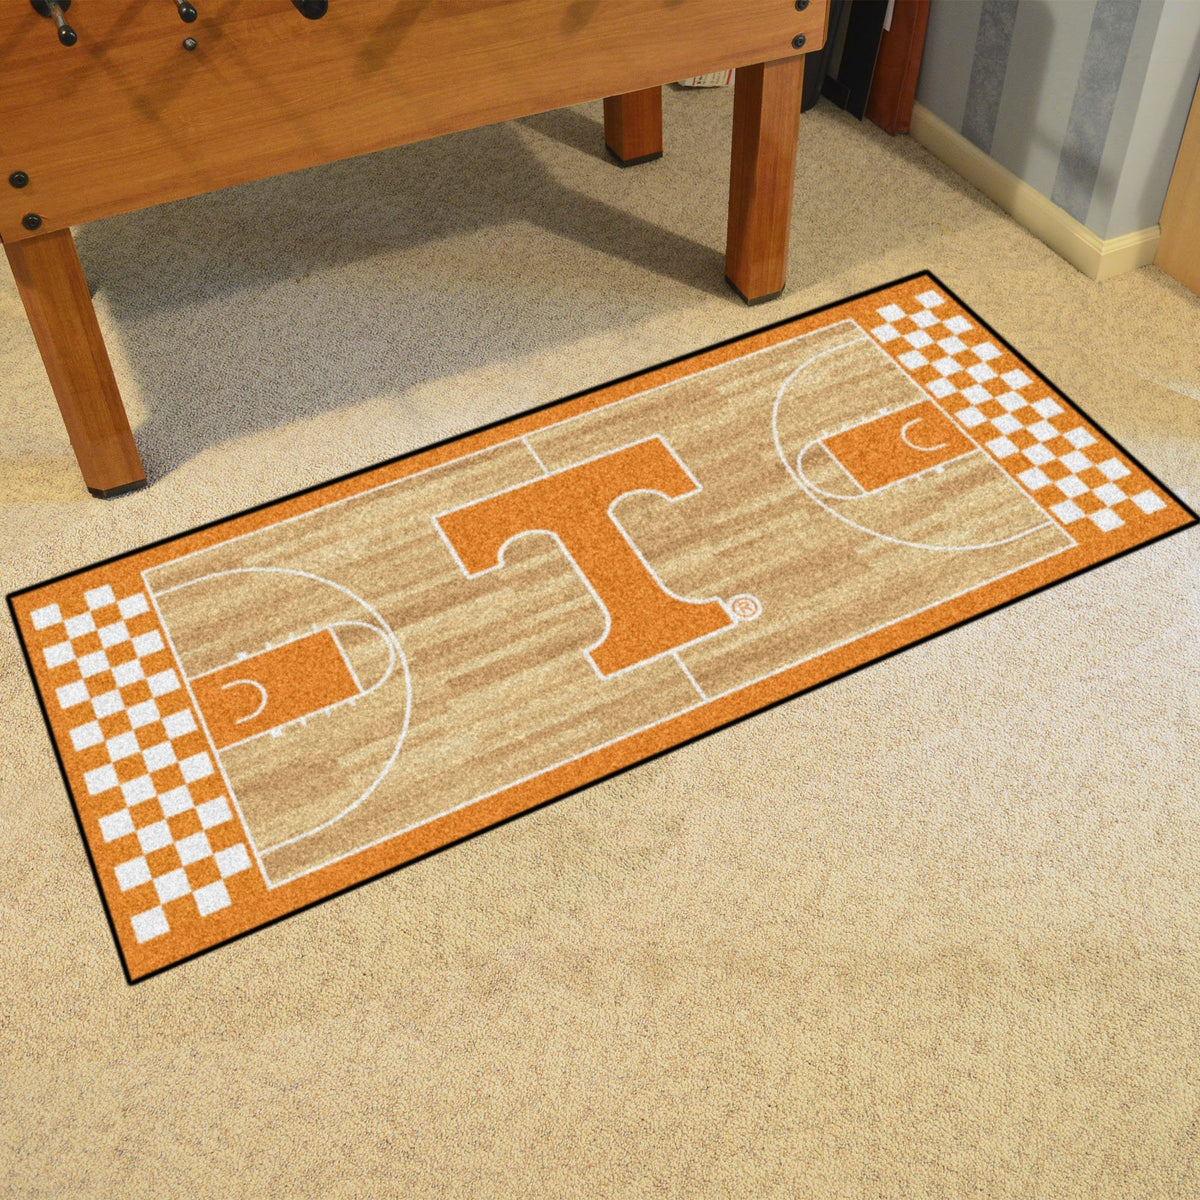 Collegiate - NCAA Basketball Runner Collegiate Mats, Rectangular Mats, NCAA Basketball Runner, Collegiate, Home Fan Mats Tennessee